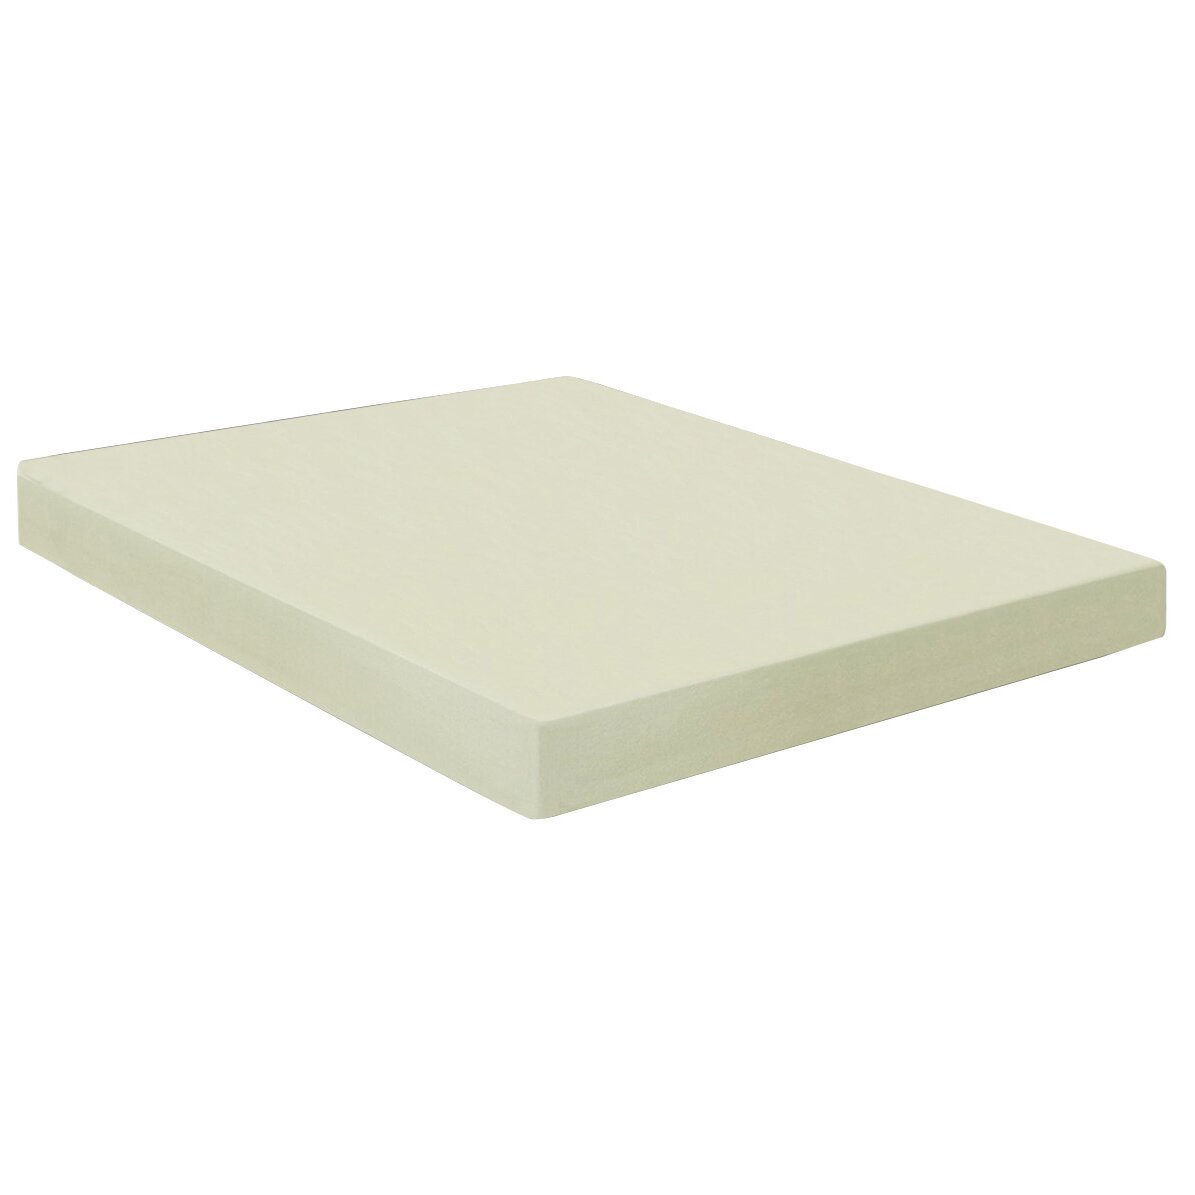 Best price quality best price quality 6 memory foam for Best foam mattress